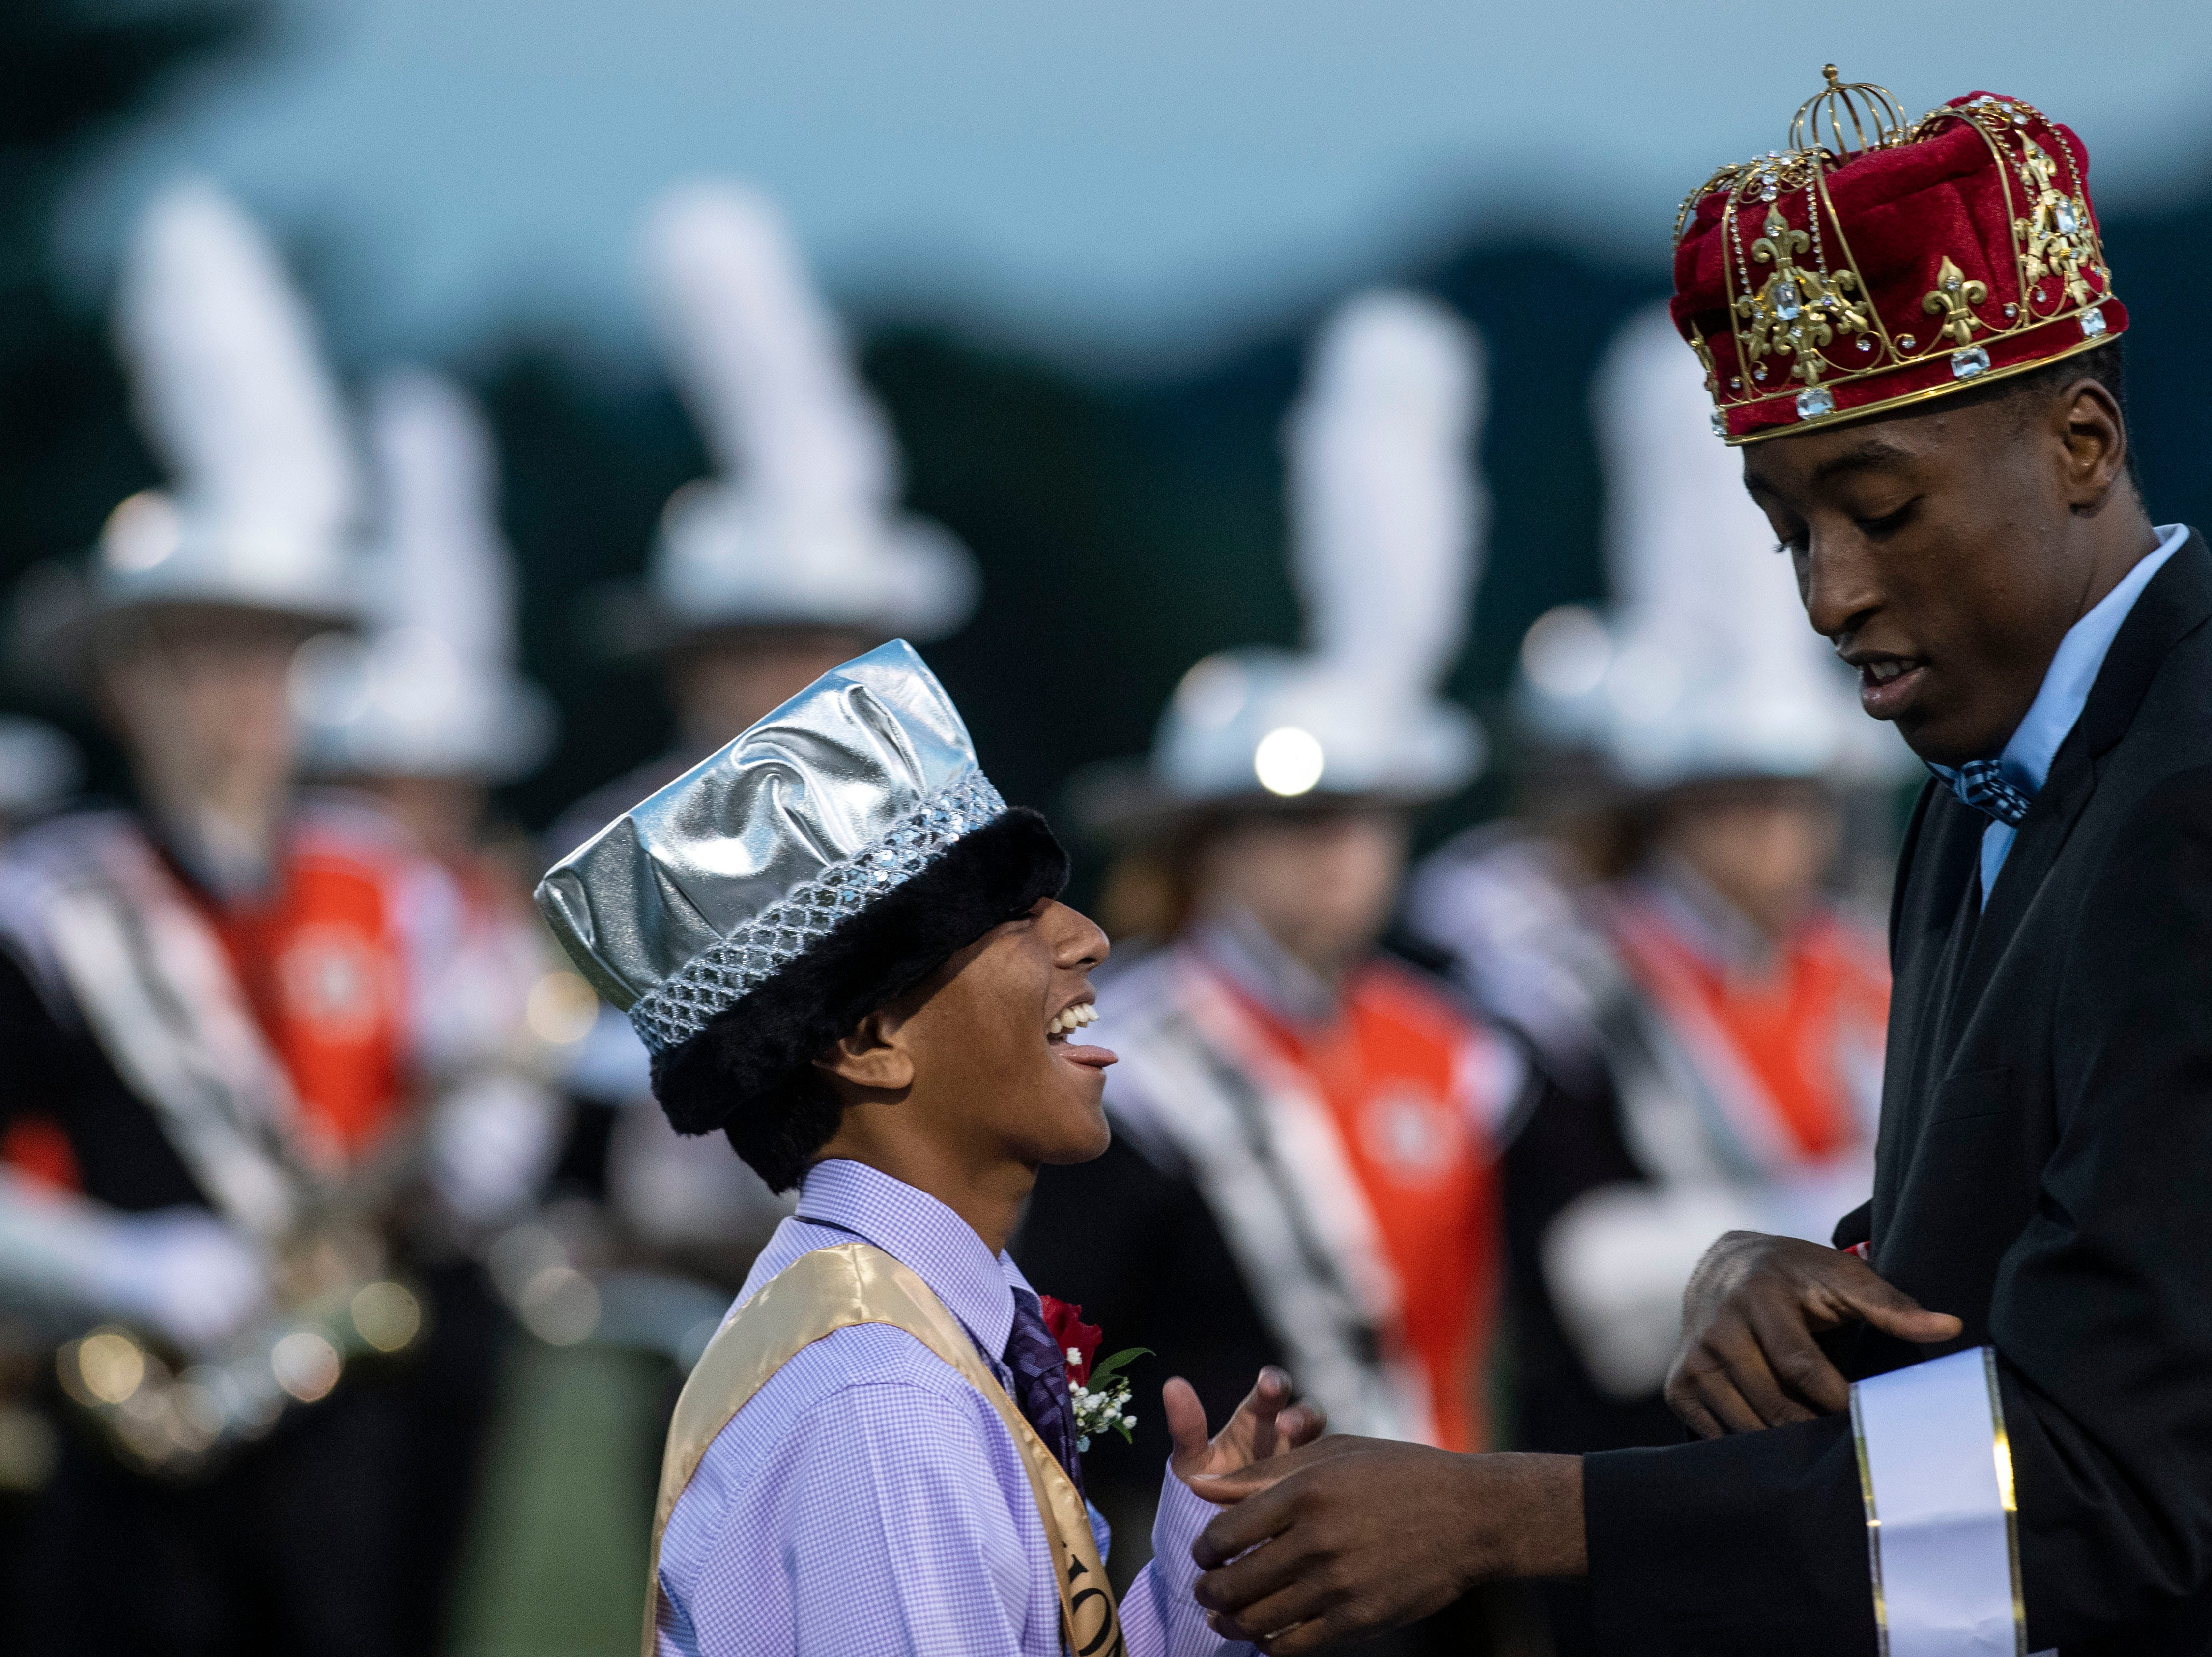 The 2017 Northeastern homecoming king, right, crowns this year's homecoming prince prior to a YAIAA Division I football game at Northeastern High School on Friday, Oct. 12, 2018. The Central York Panthers beat the Northeastern Bobcats, 44-7.